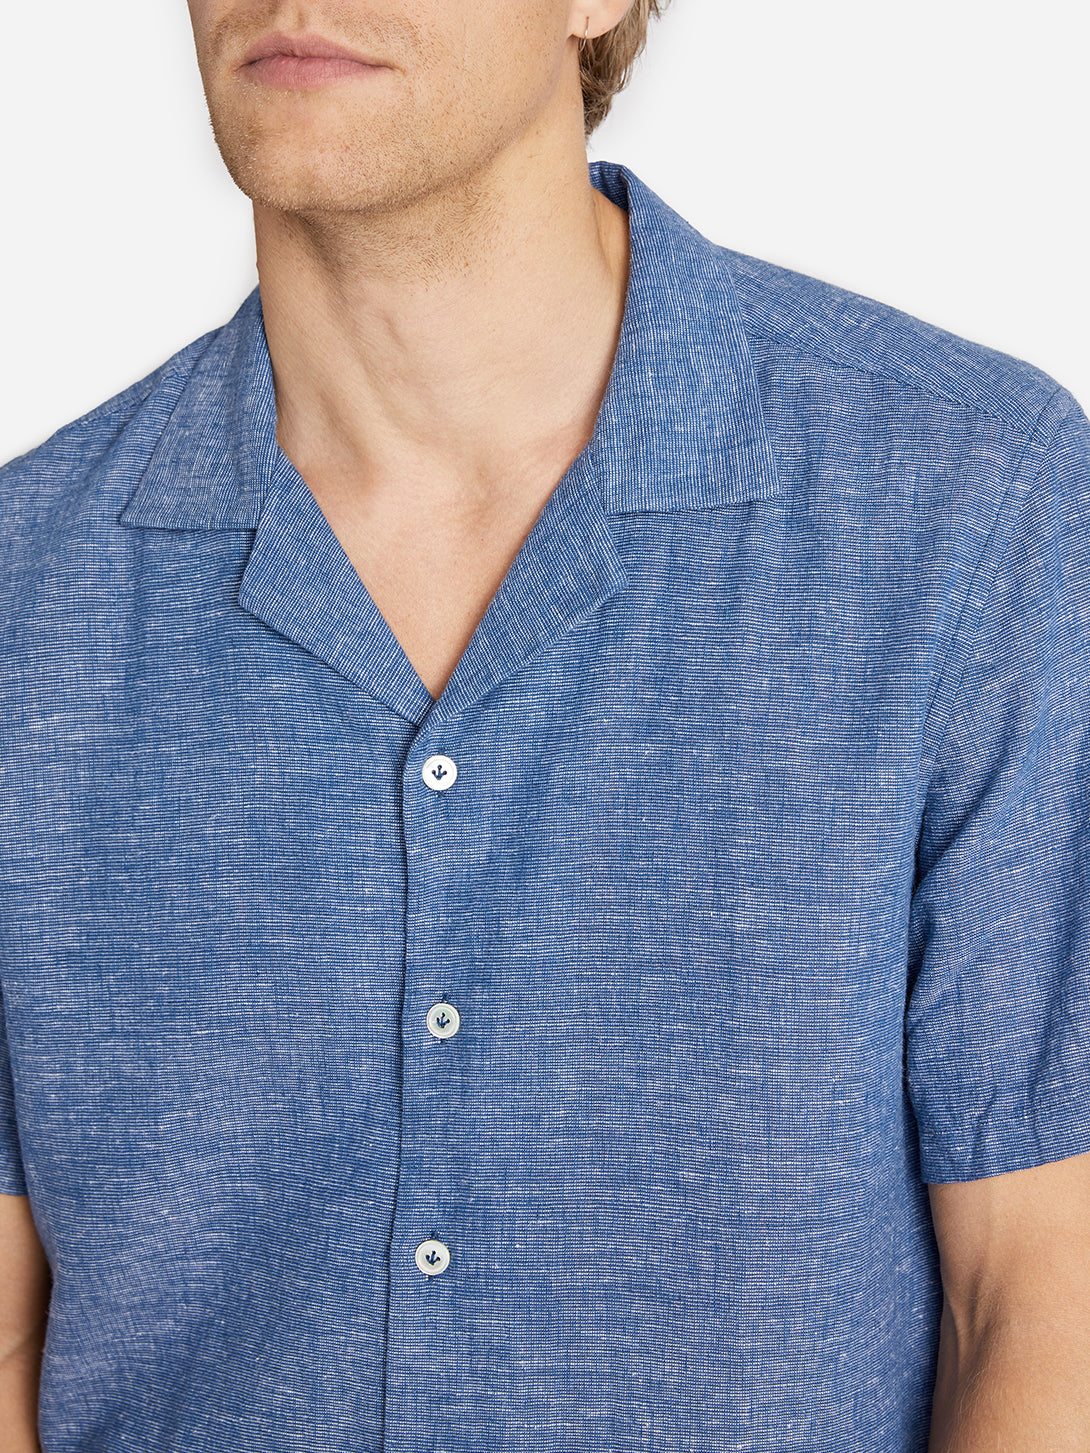 RYDE CAMP COLLAR SHIRT INDIGO ONS CLOTHING